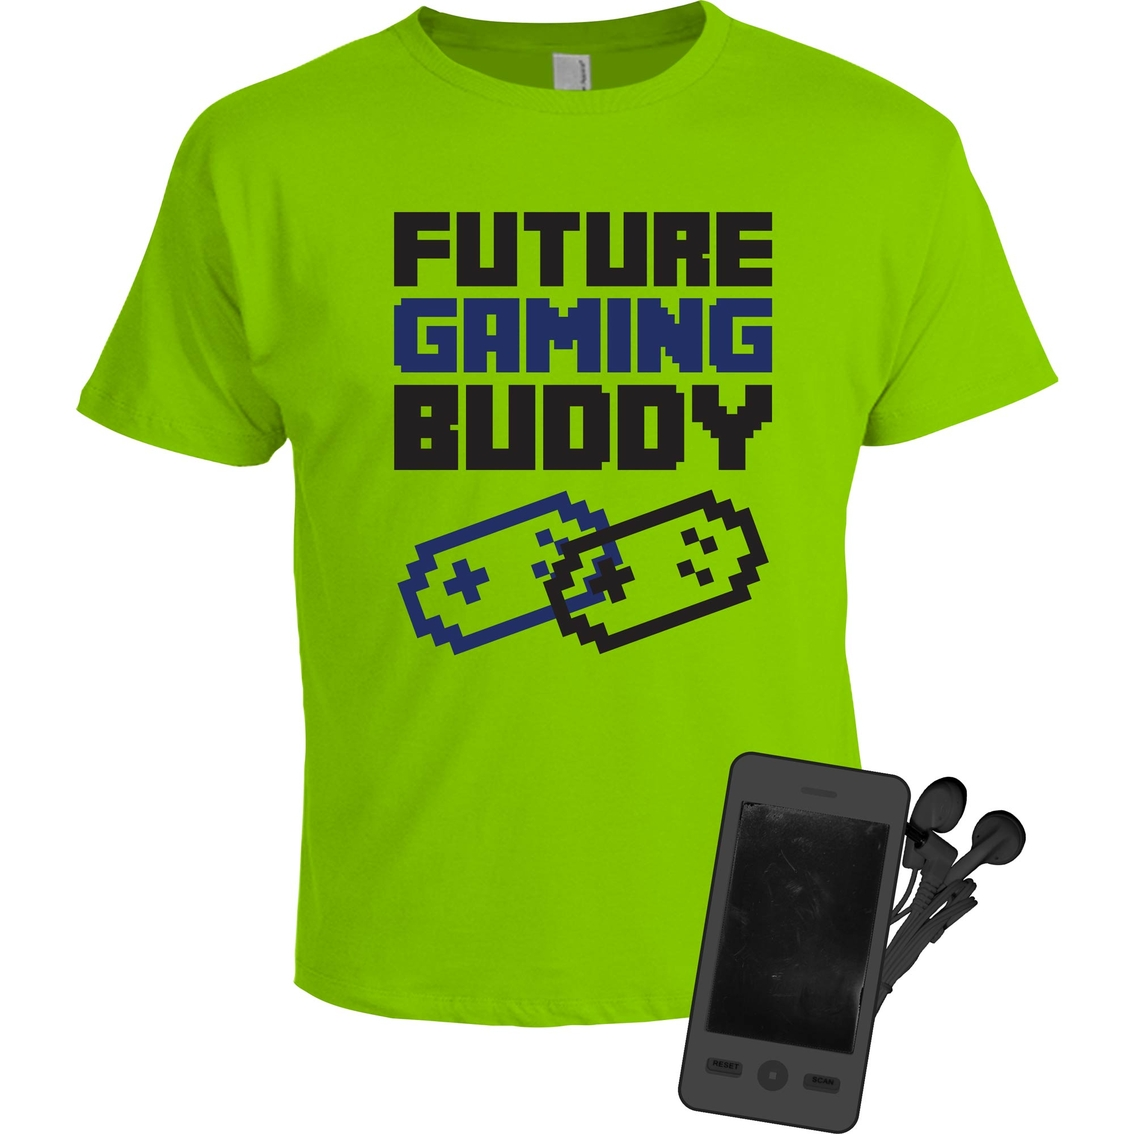 Buzz Cuts Little Boys Future Gaming Tee Buddy With Fm Radio